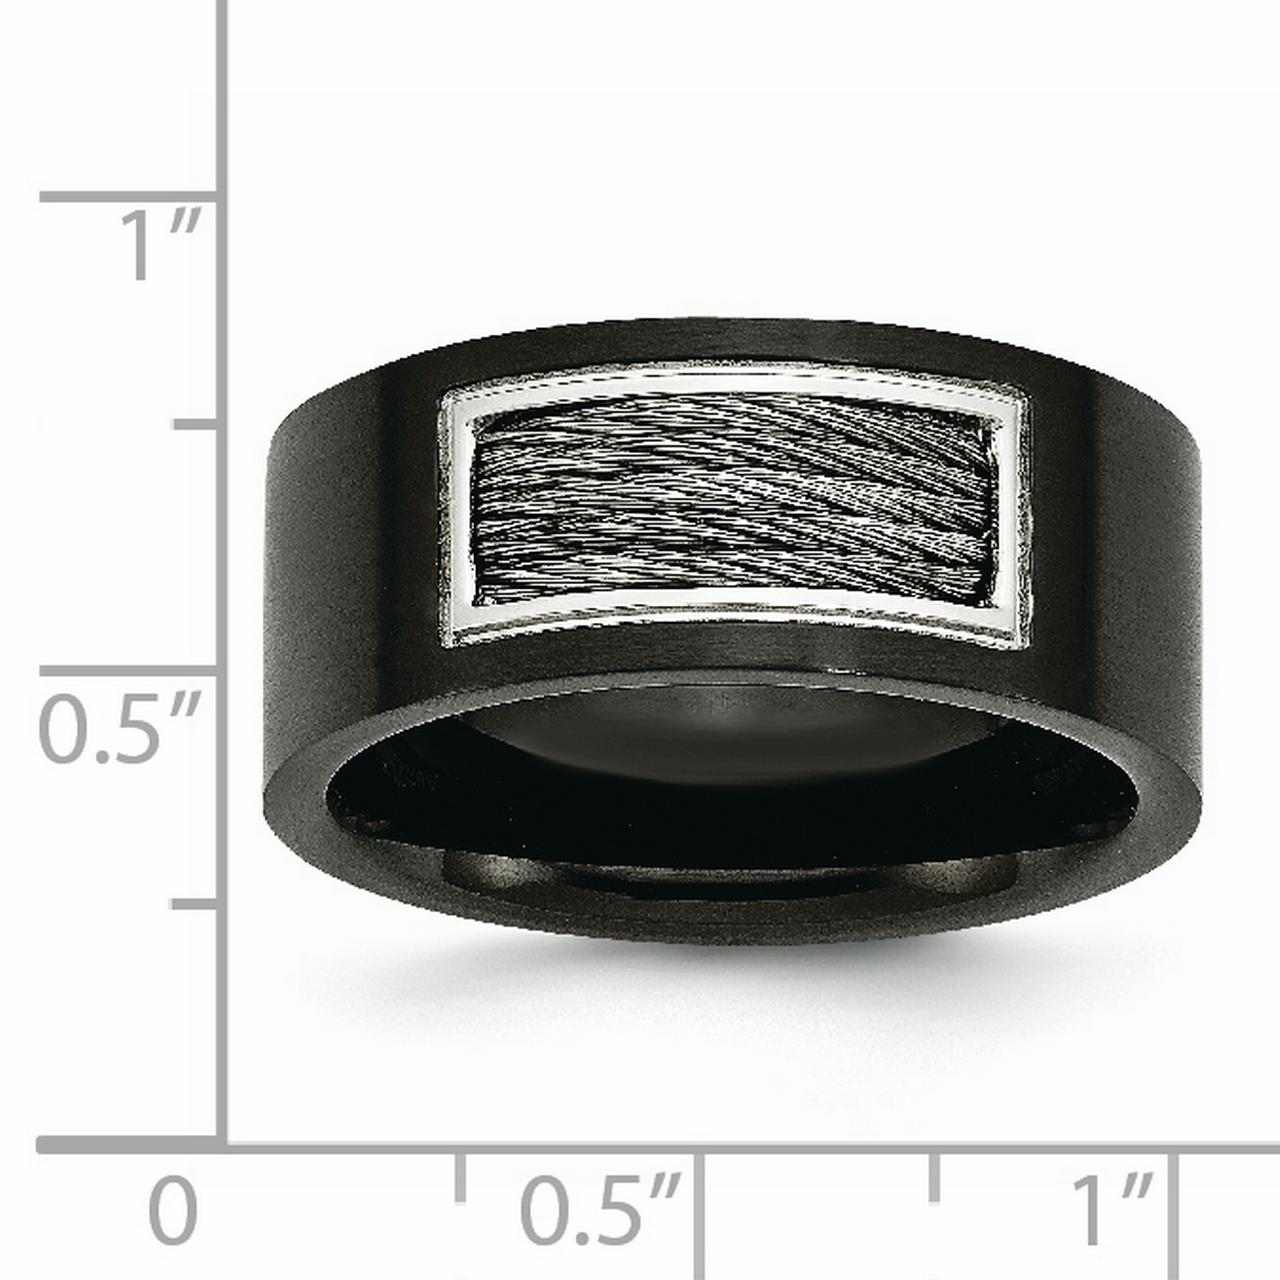 Stainless Steel Black Plated Wire Inlay Band Ring Size 9.00 Wedding Type Of Fashion Jewelry Gifts For Women For Her - image 3 of 7